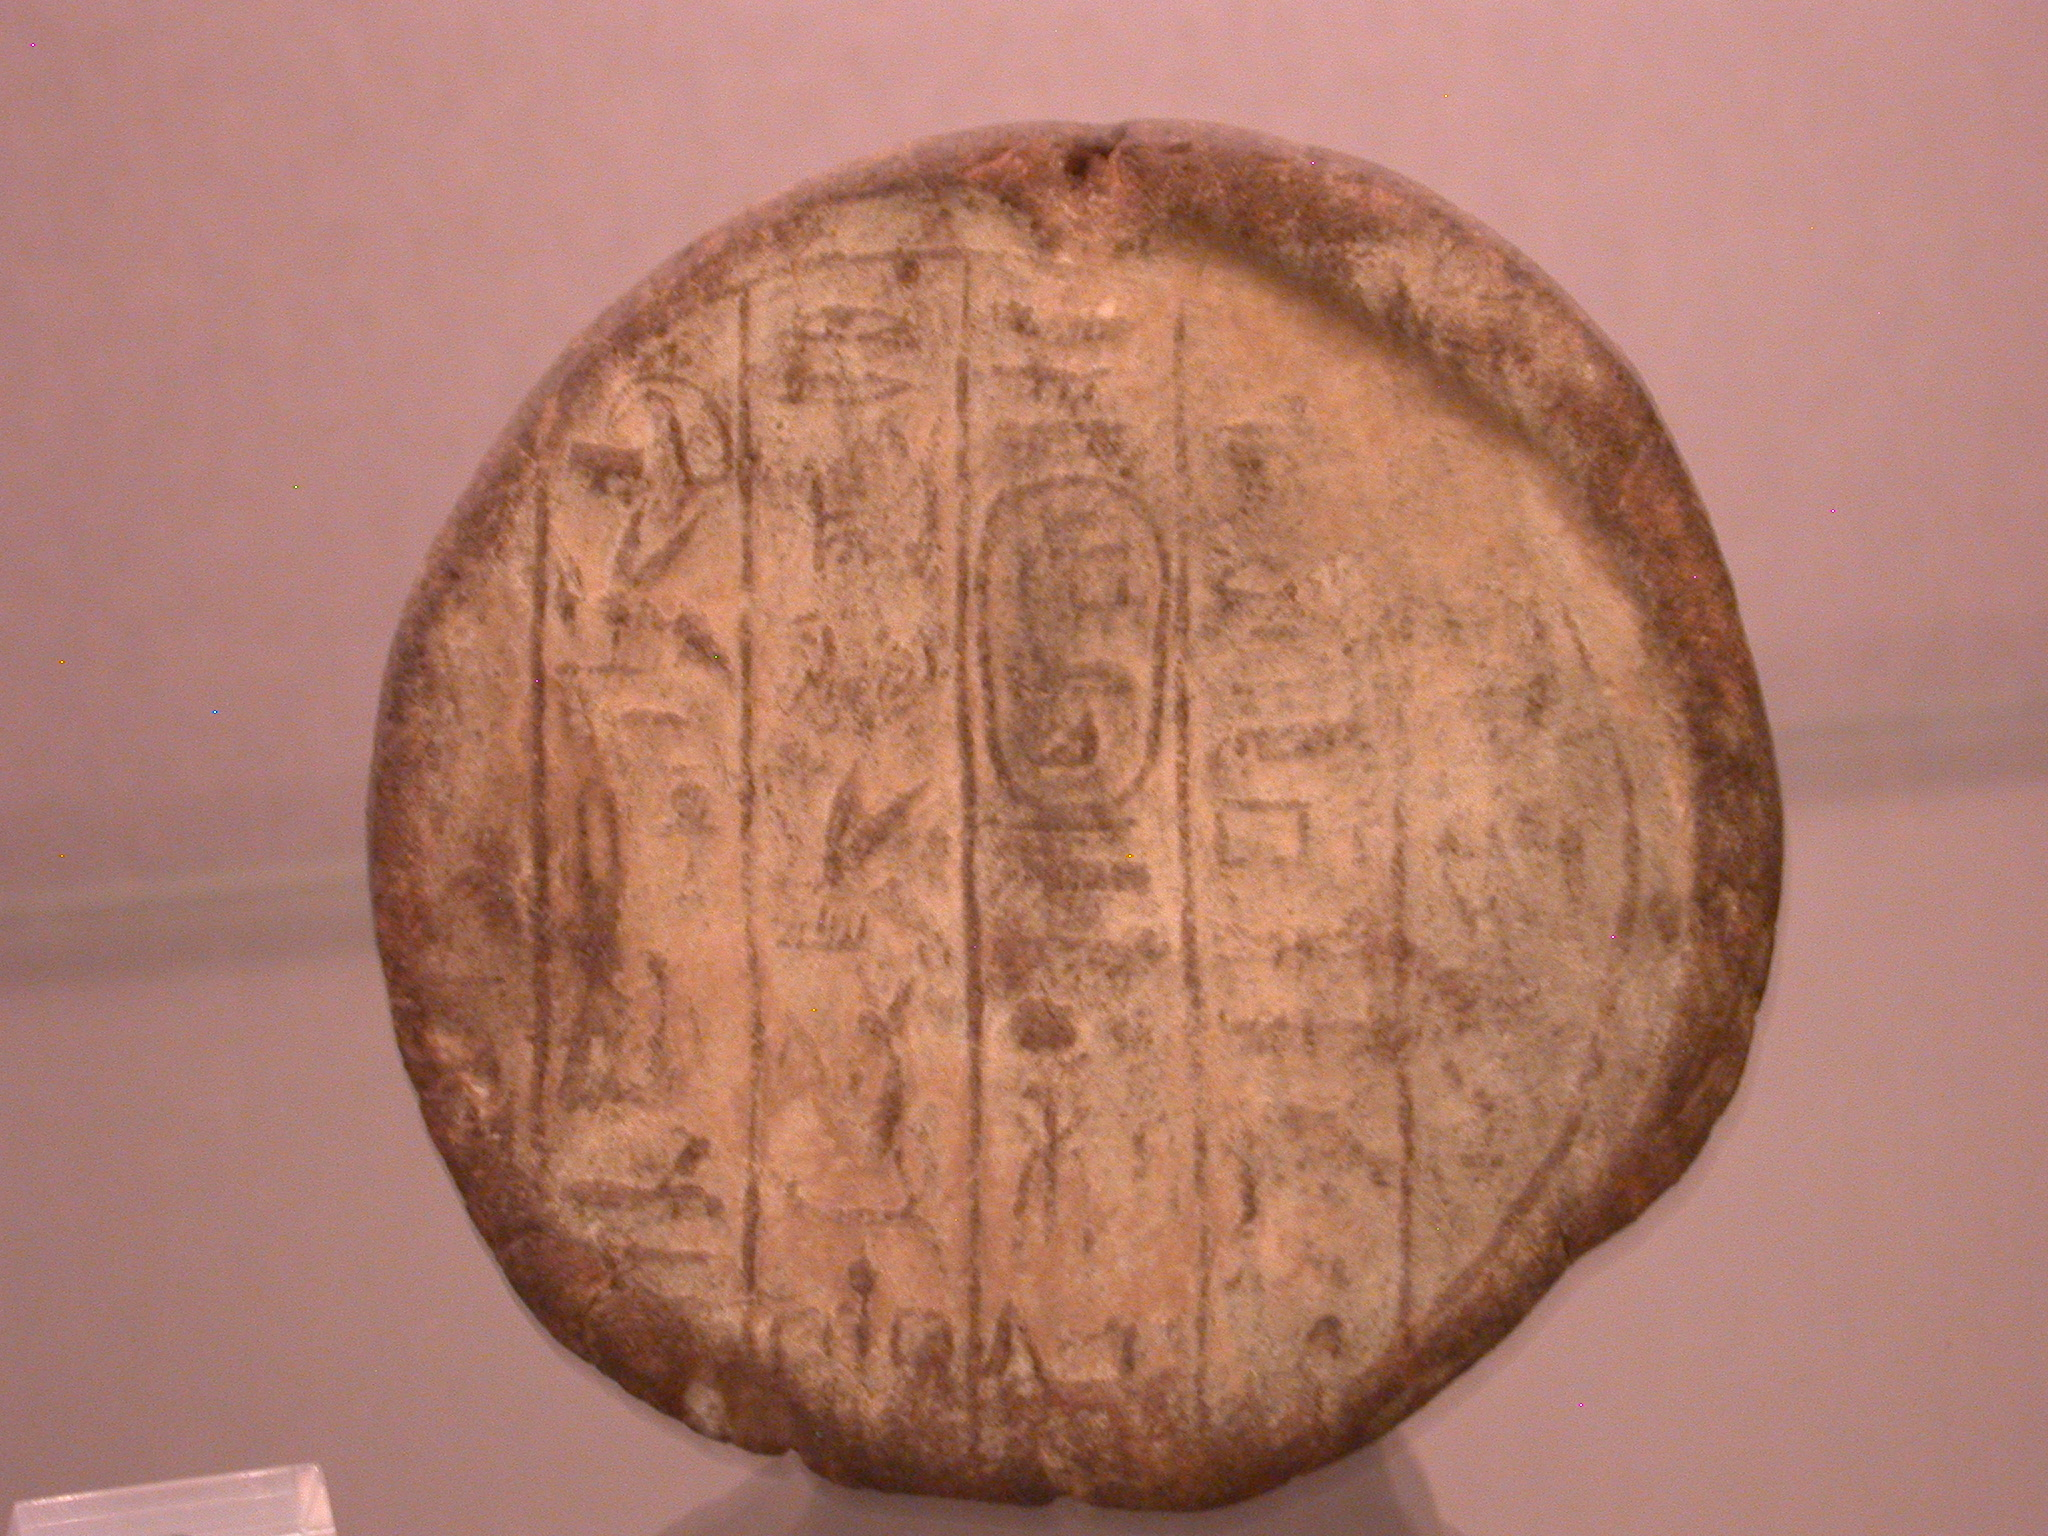 Funerary Cone for Taharqa, Clay, 25th Dynasty, 690-664 BCE, Egypt, in Fitzwilliam Museum, Cambridge, England